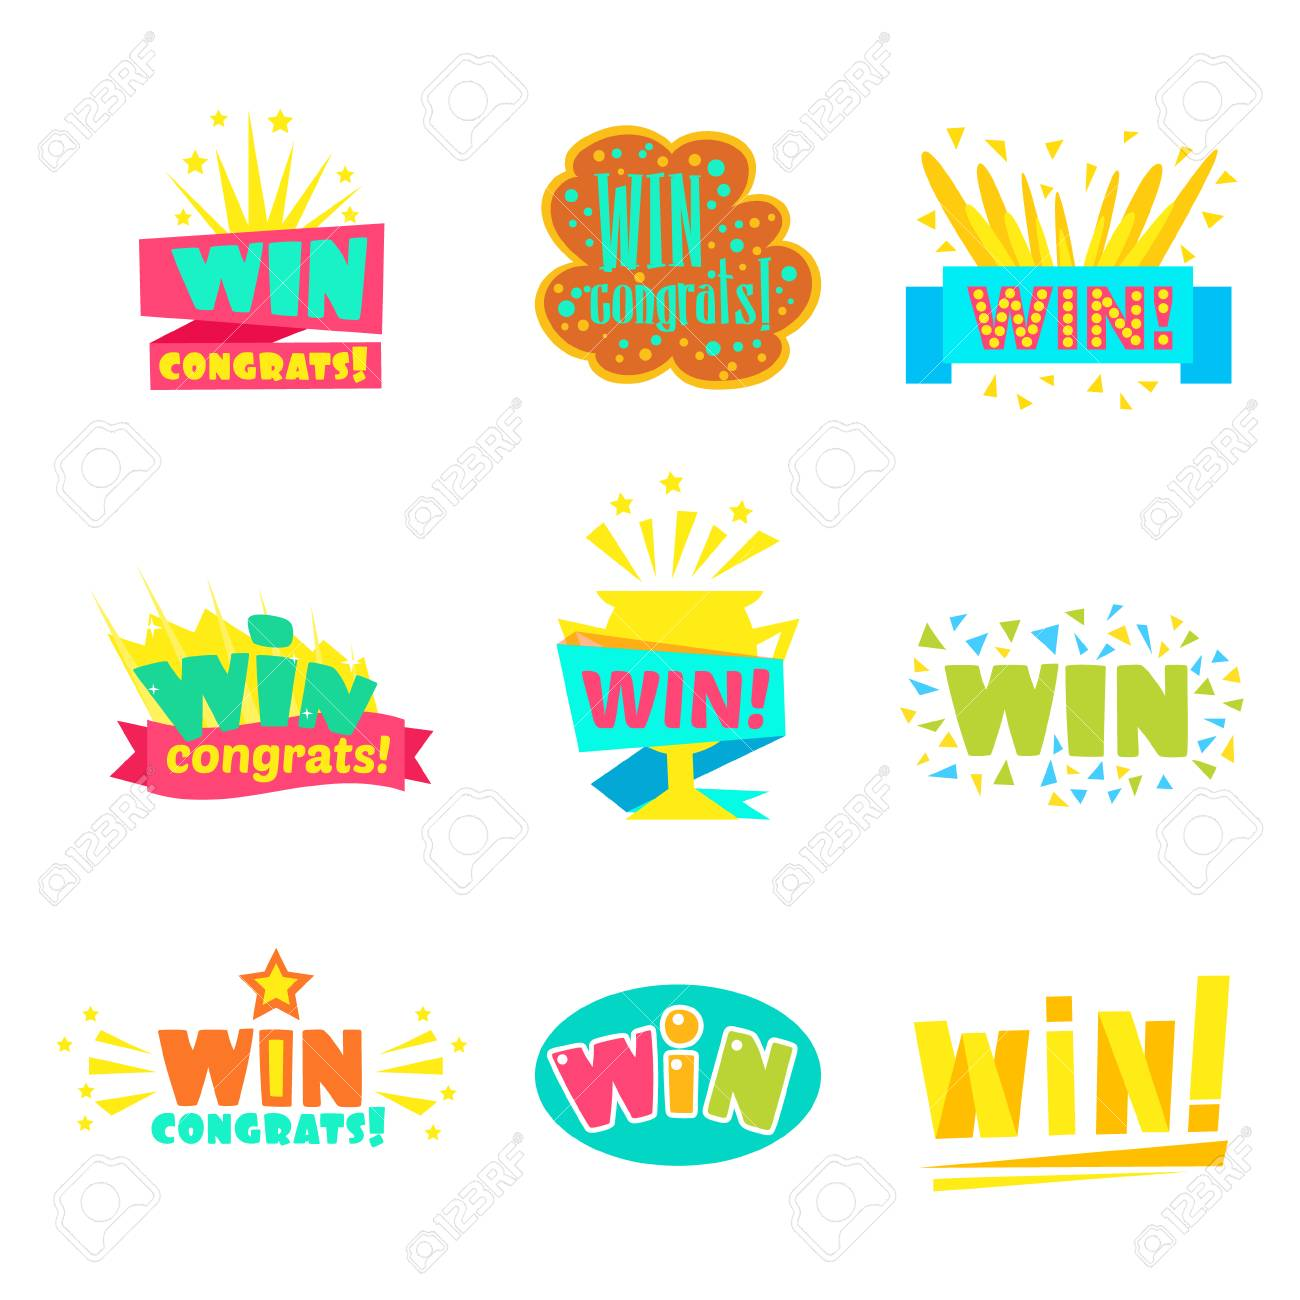 Win Congratulations Stickers Collection Of Comic Designs For